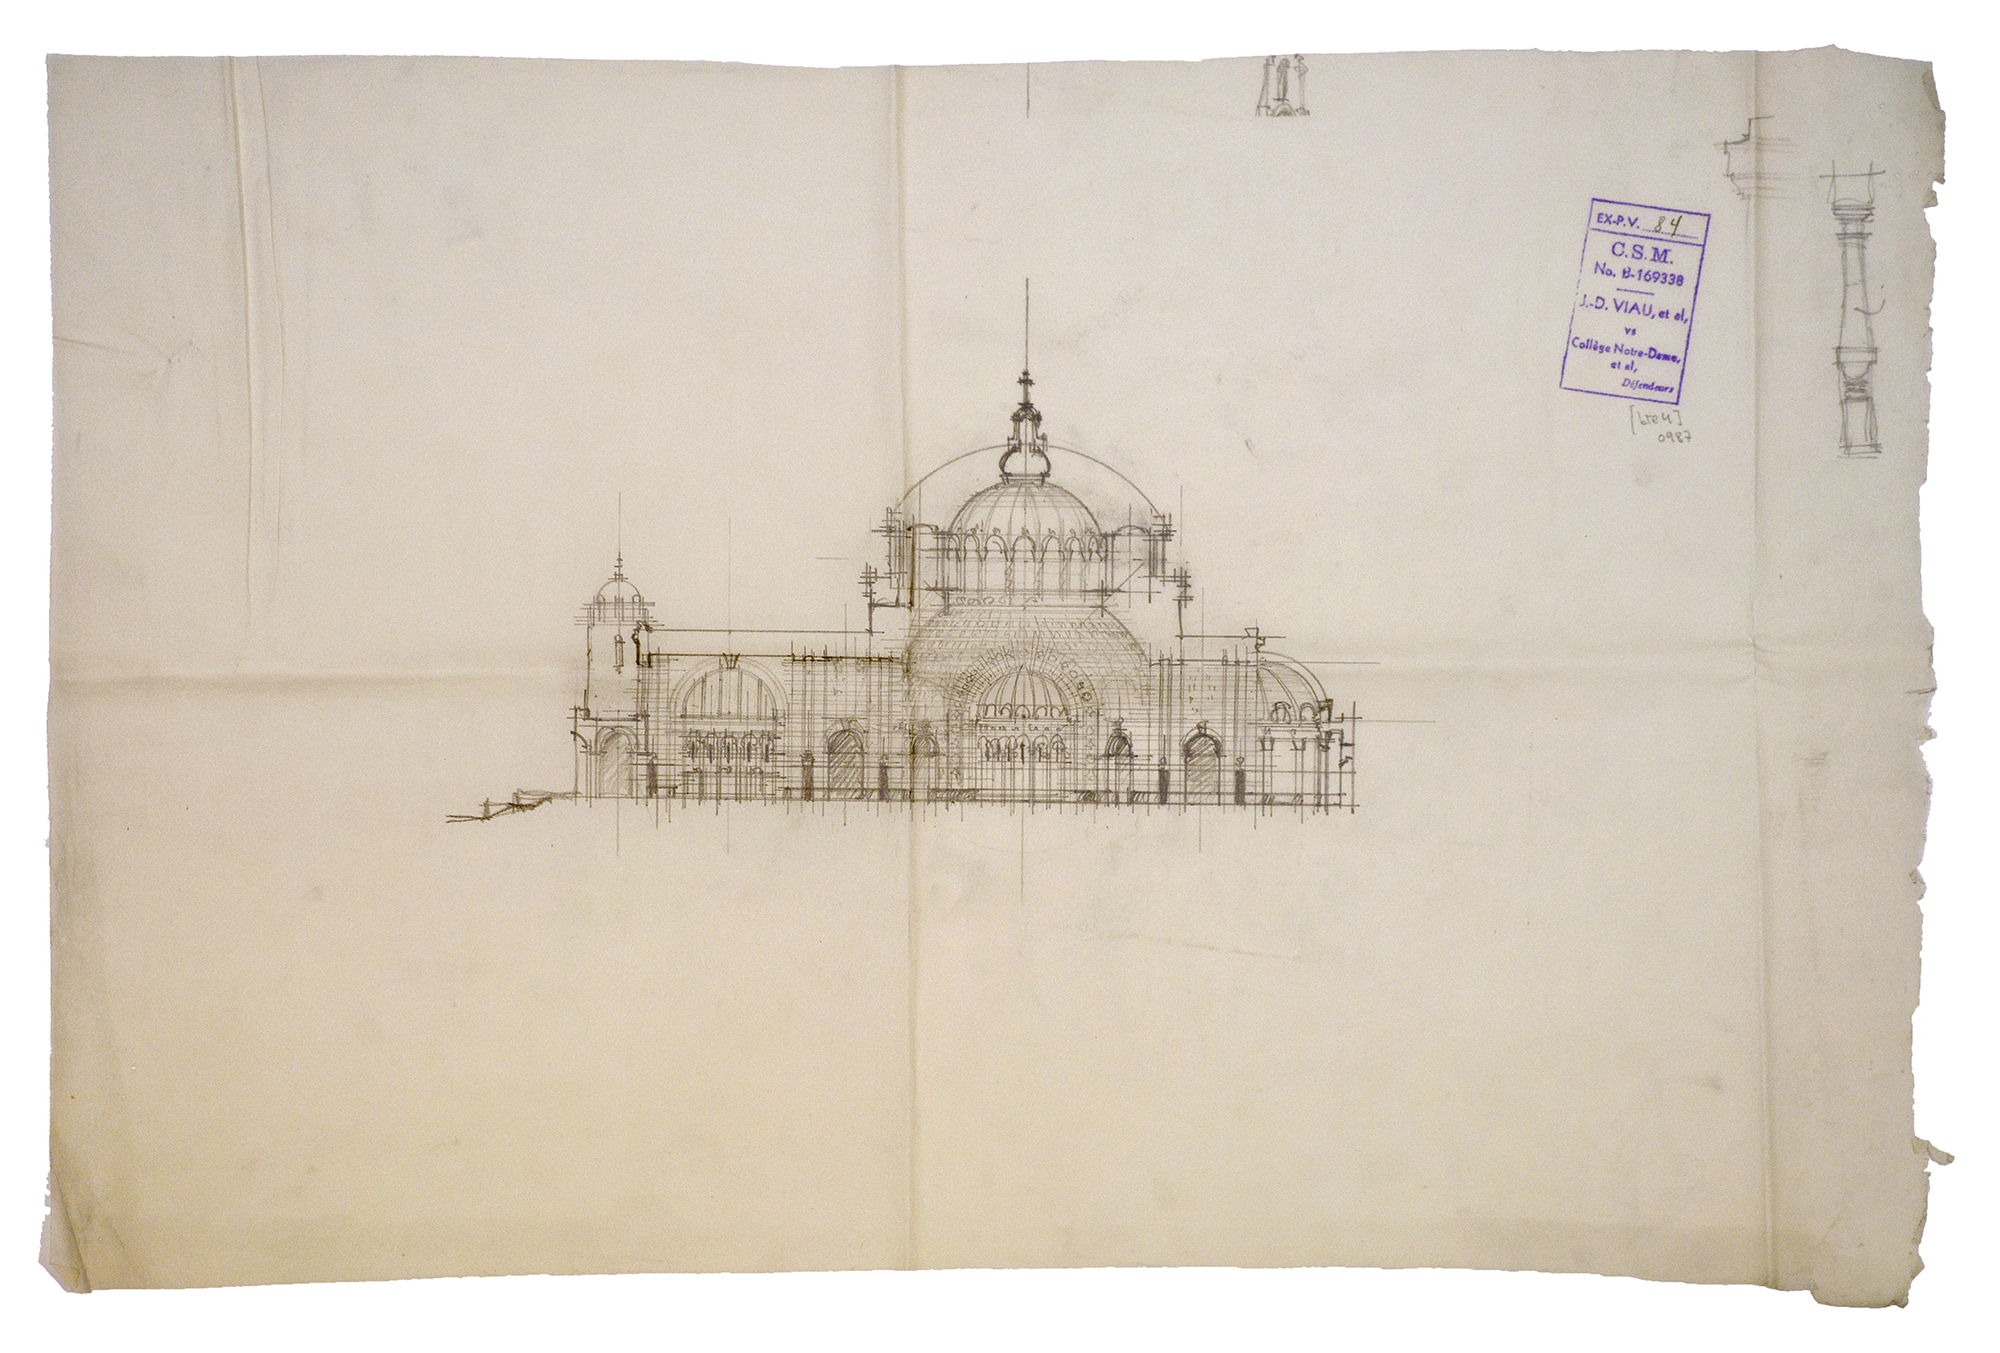 La basilique imaginaire - La crypte - document no 0987